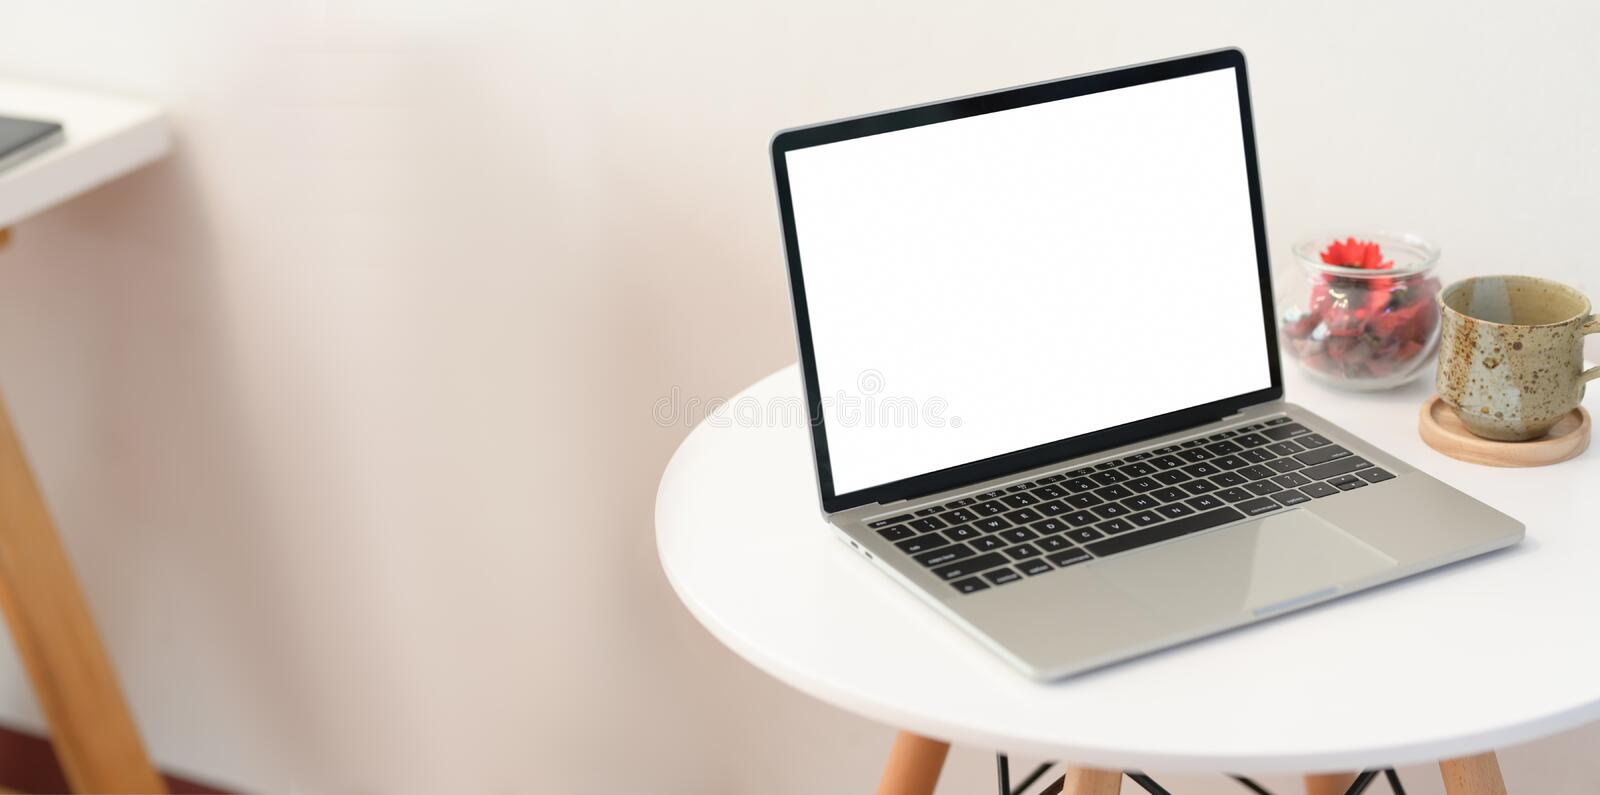 Blank screen laptop on modern wooden table stock image